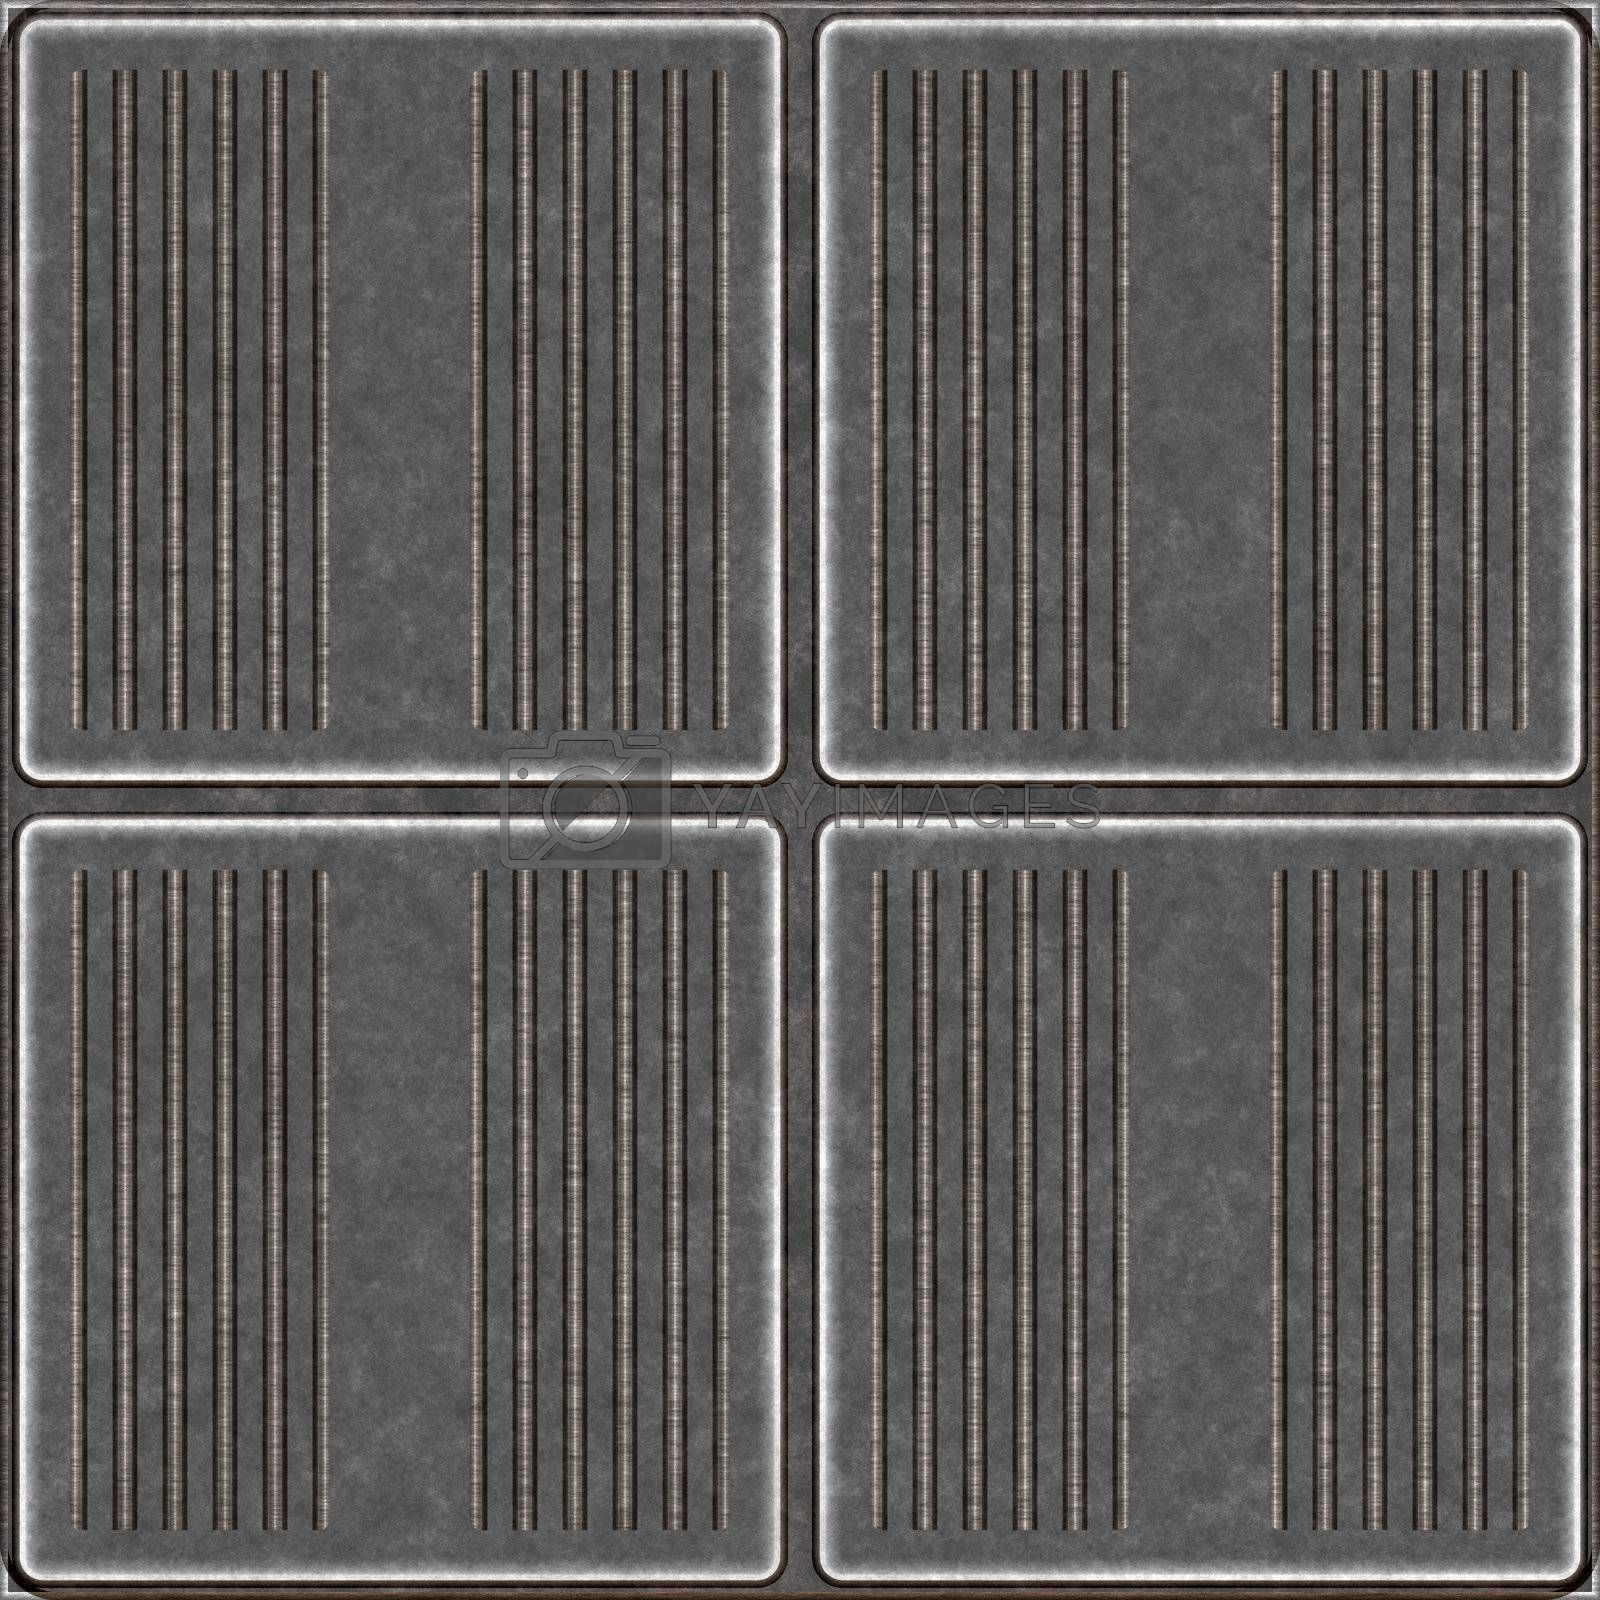 Seamless worn metal plates with grooves that tile seamlessly as a pattern in any direction.